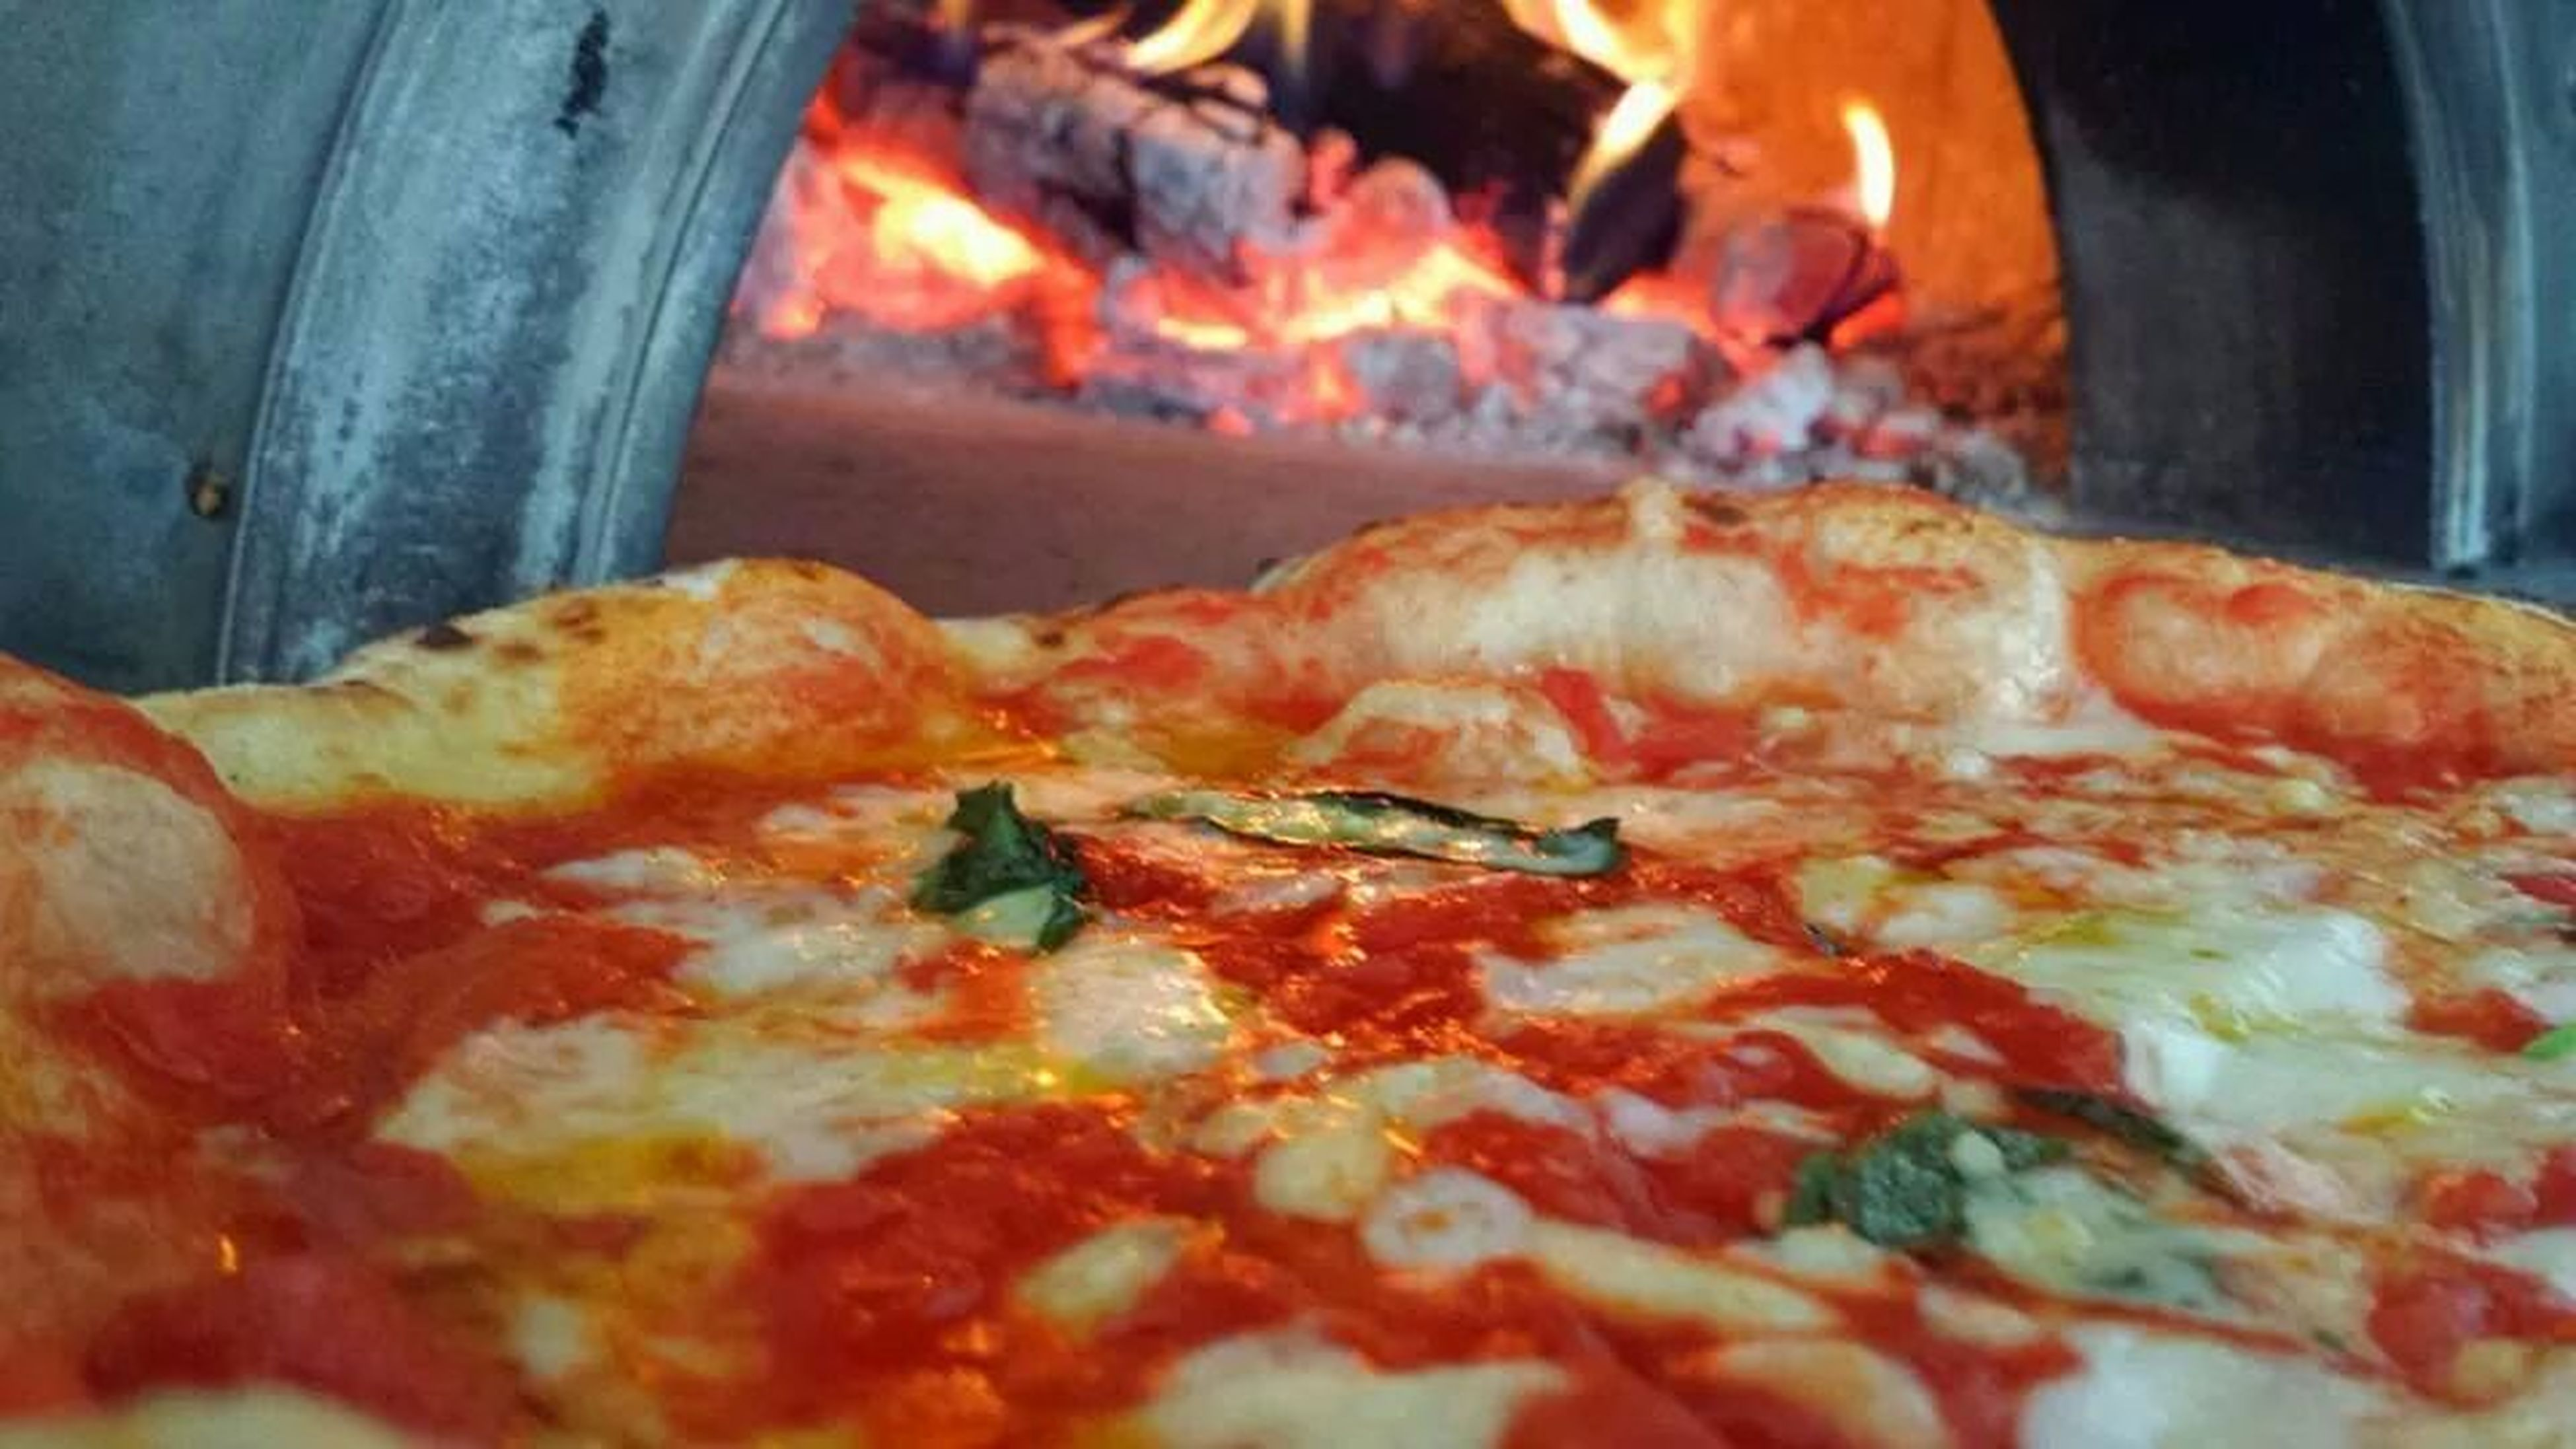 indoors, food and drink, food, close-up, orange color, flame, burning, heat - temperature, selective focus, still life, fire - natural phenomenon, pizza, no people, ready-to-eat, freshness, unhealthy eating, meat, preparation, focus on foreground